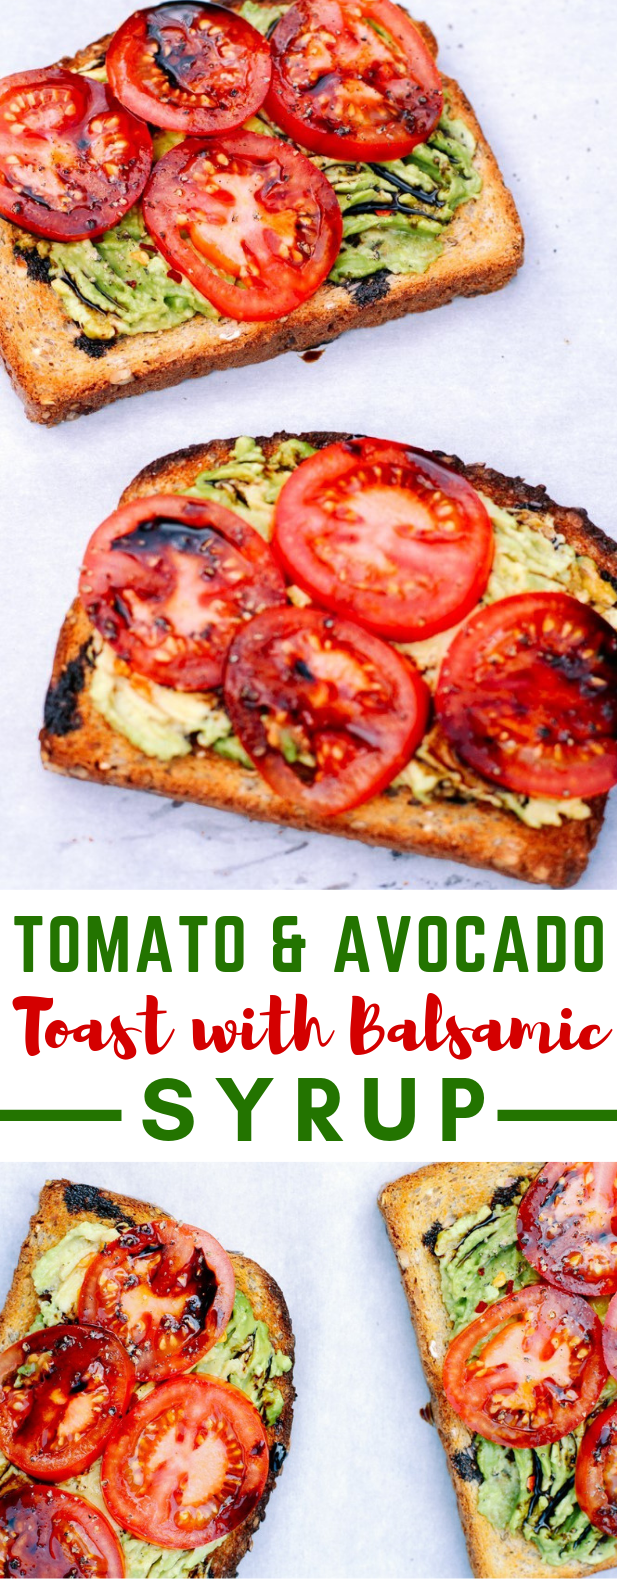 Tomato and Avocado Toast with Balsamic Syrup #vegetarian #breakfast